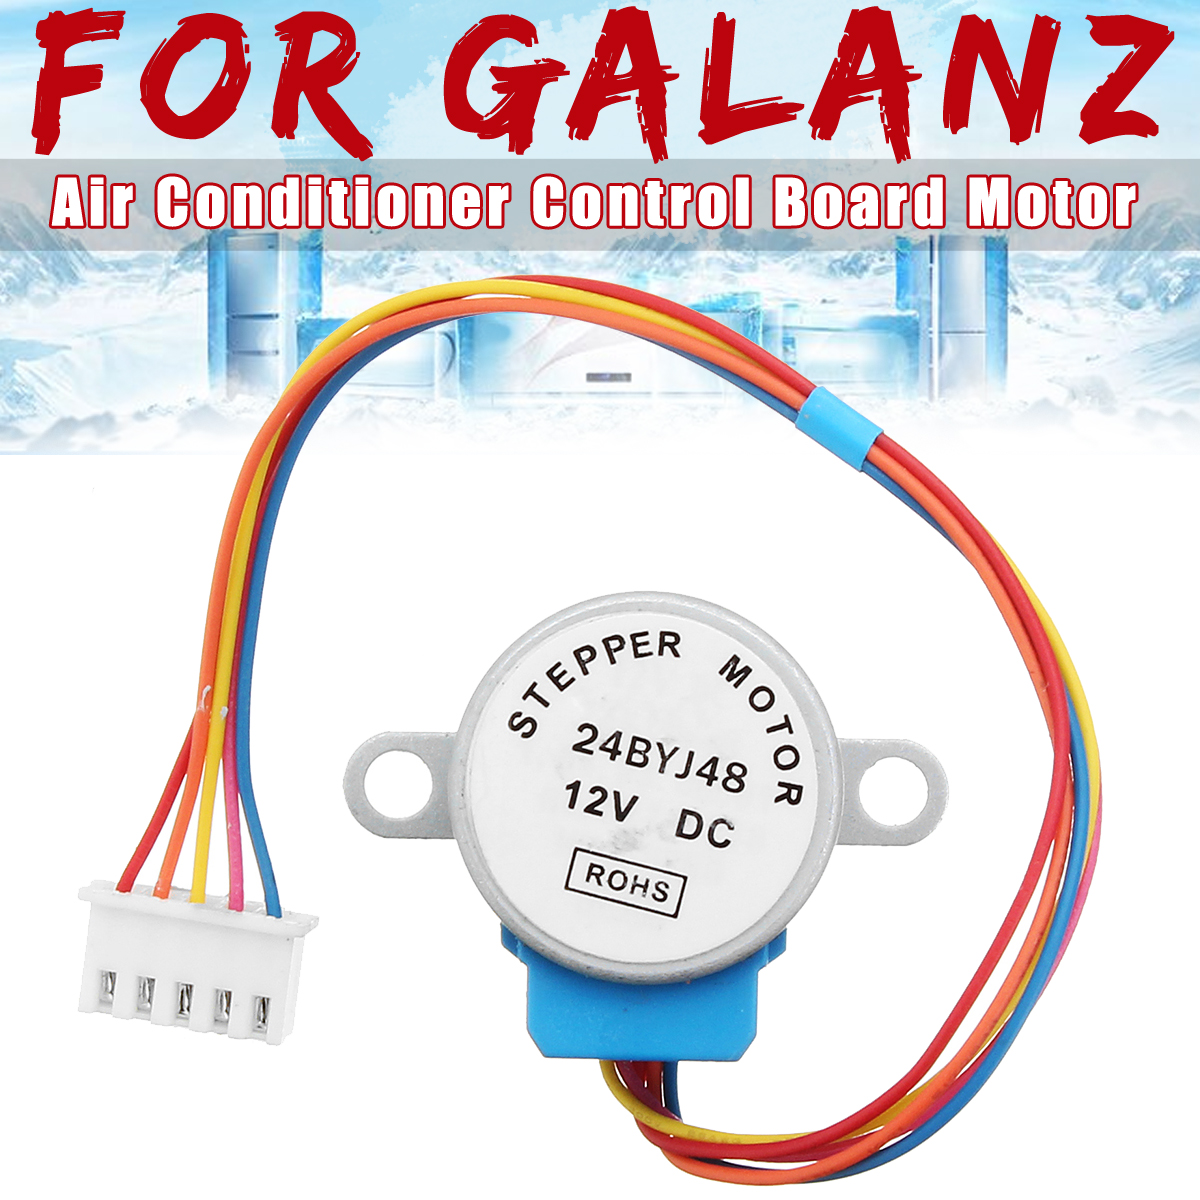 medium resolution of gal12a bd air conditioner control board motor outboard motor metal air conditioner parts for galanz